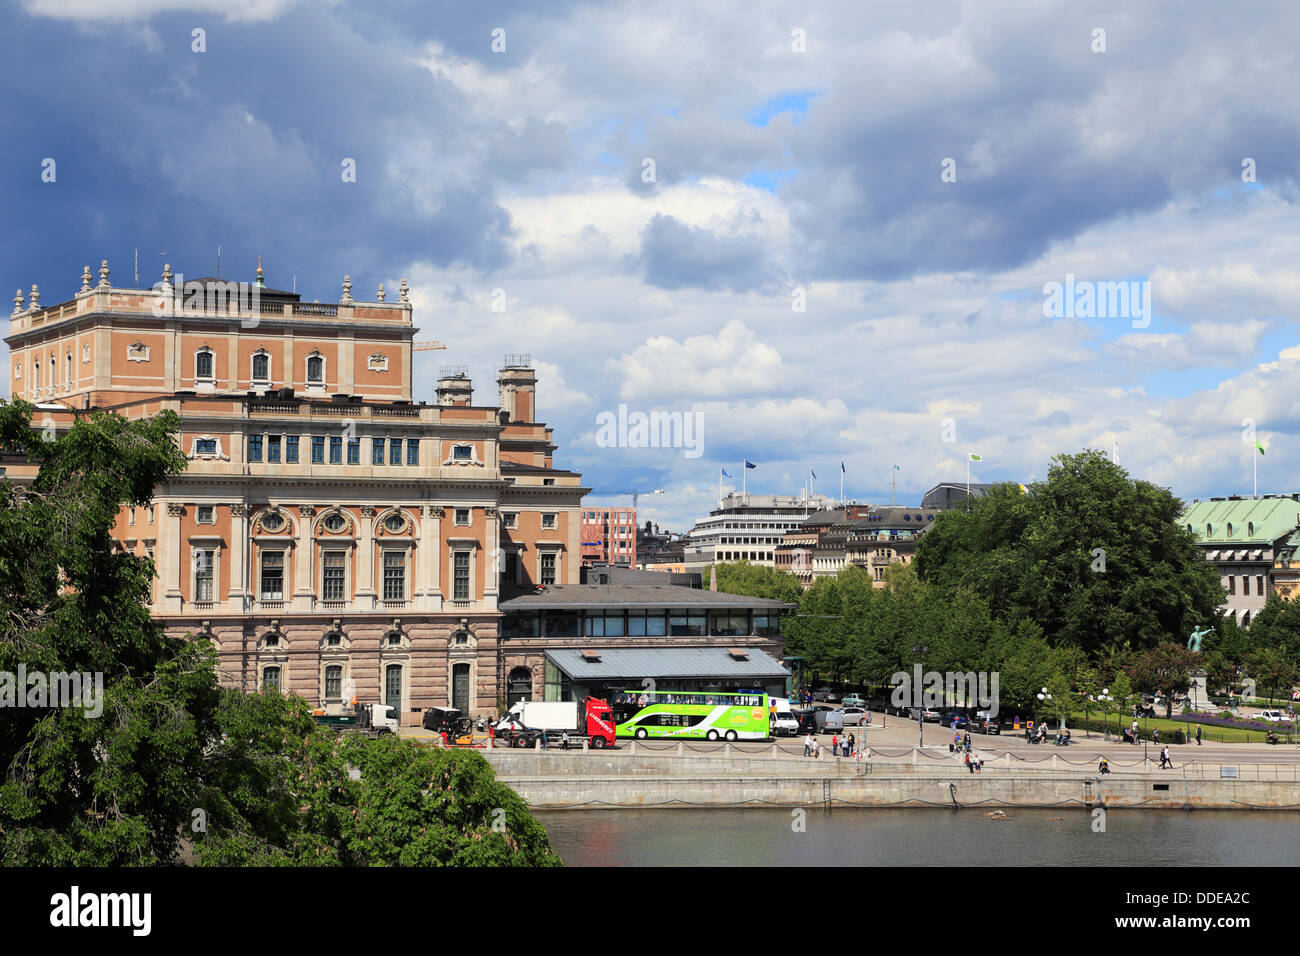 Stockholm, Sweden. View over the Royal Opera house and Kungstradgarden. Stockholm strom in the foreground. - Stock Image